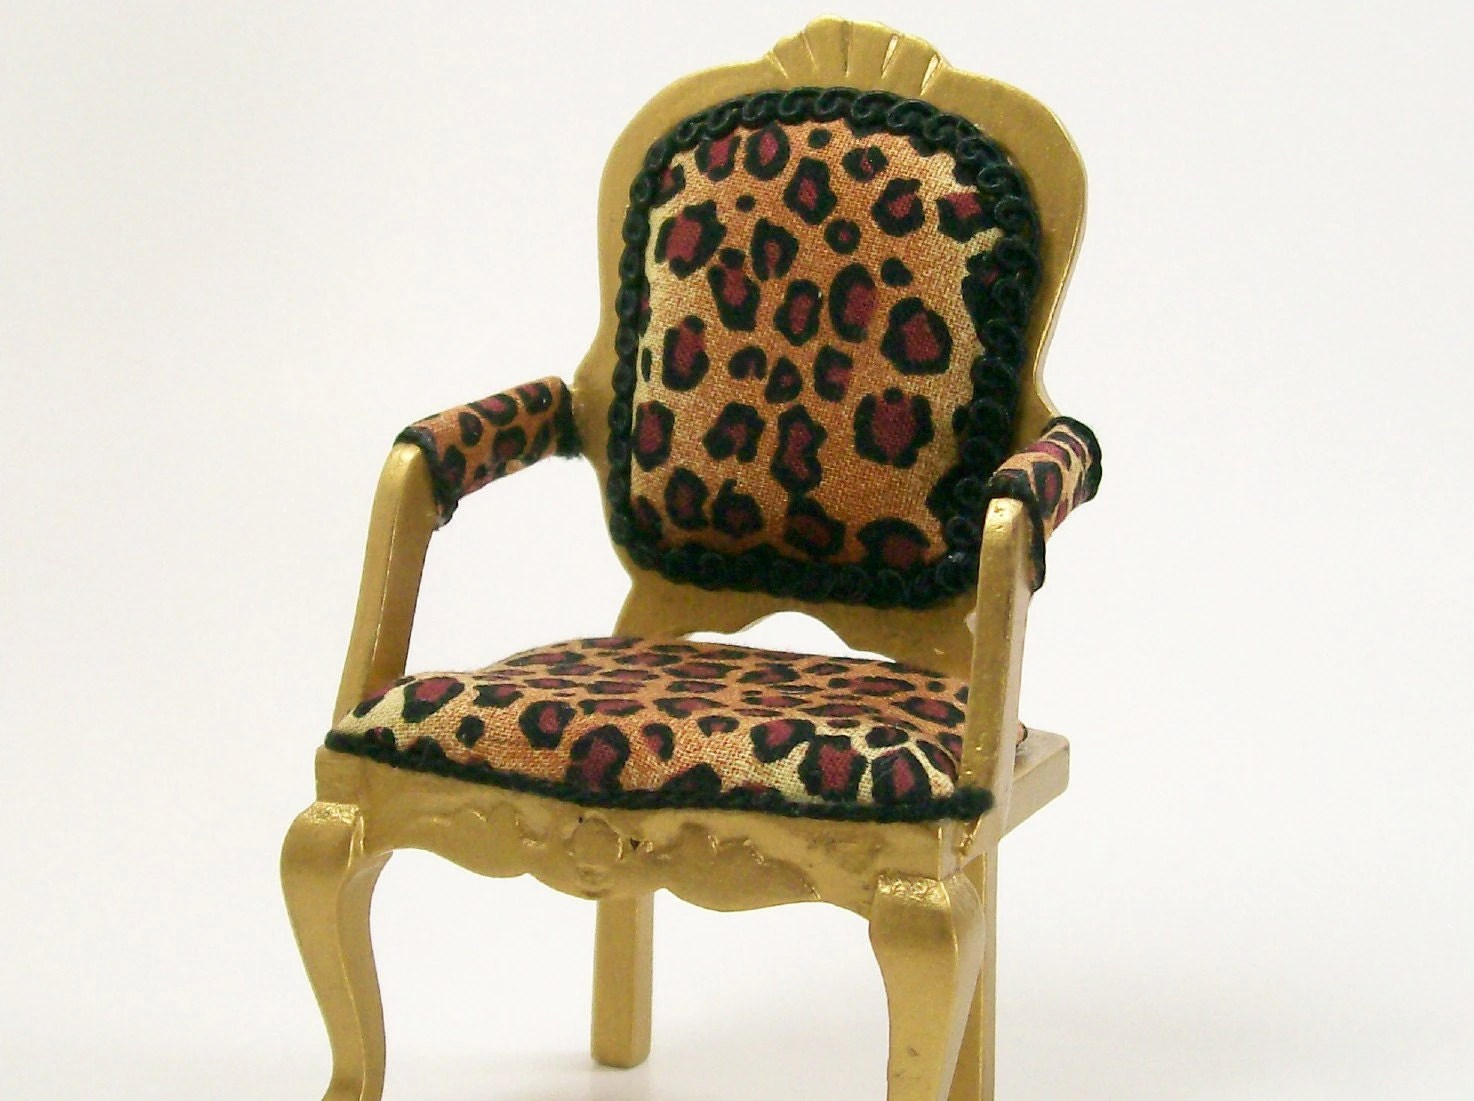 Cheetah Chair Leopard Print Chair Gold Upholstered Furniture 1 12 Dollhouse